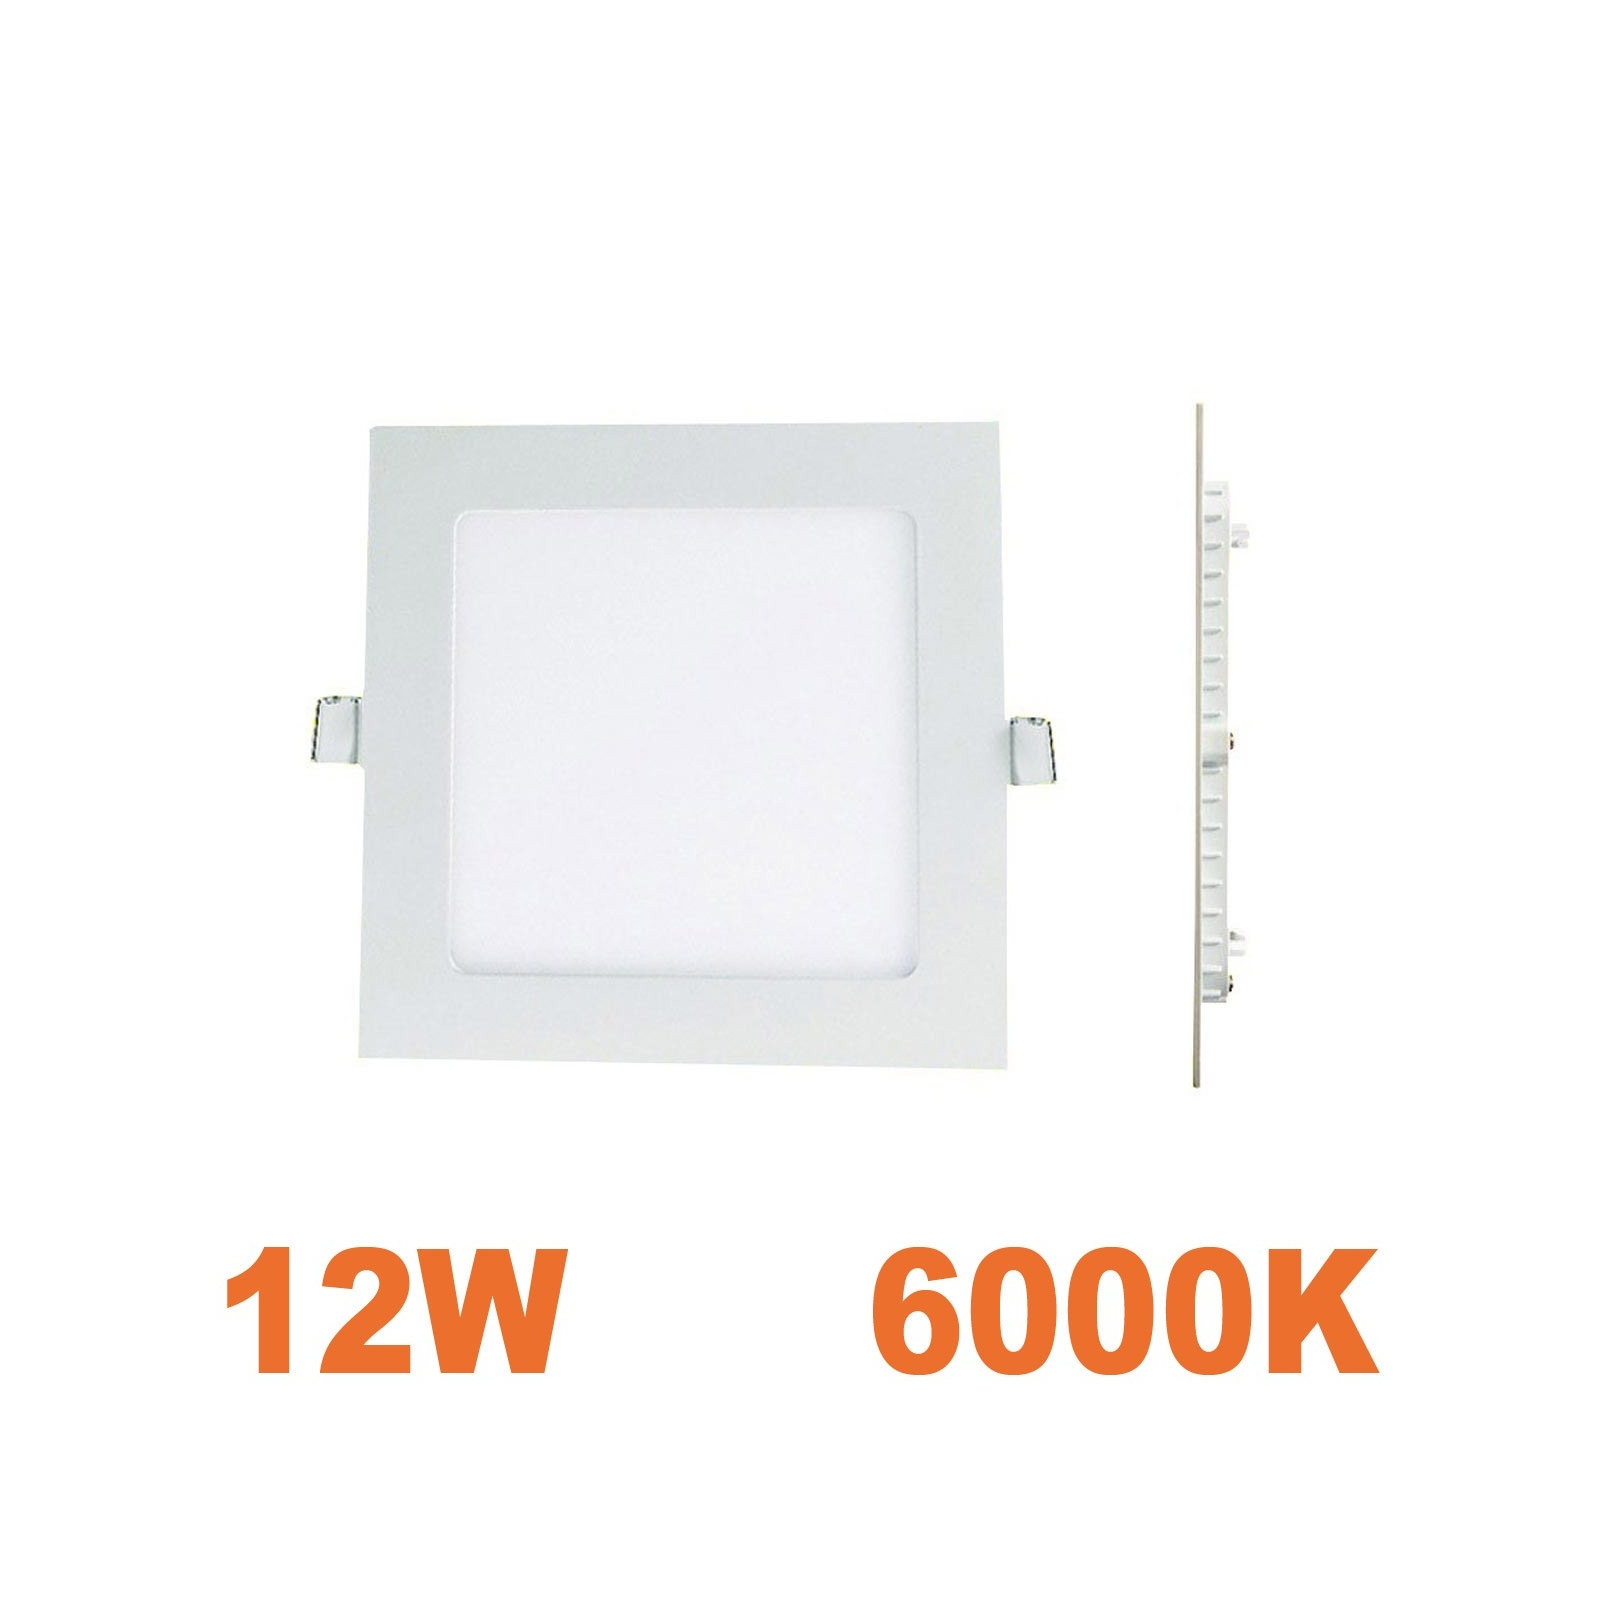 spot encastrable led carre downlight panel extra plat 12w blanc froid 6000k